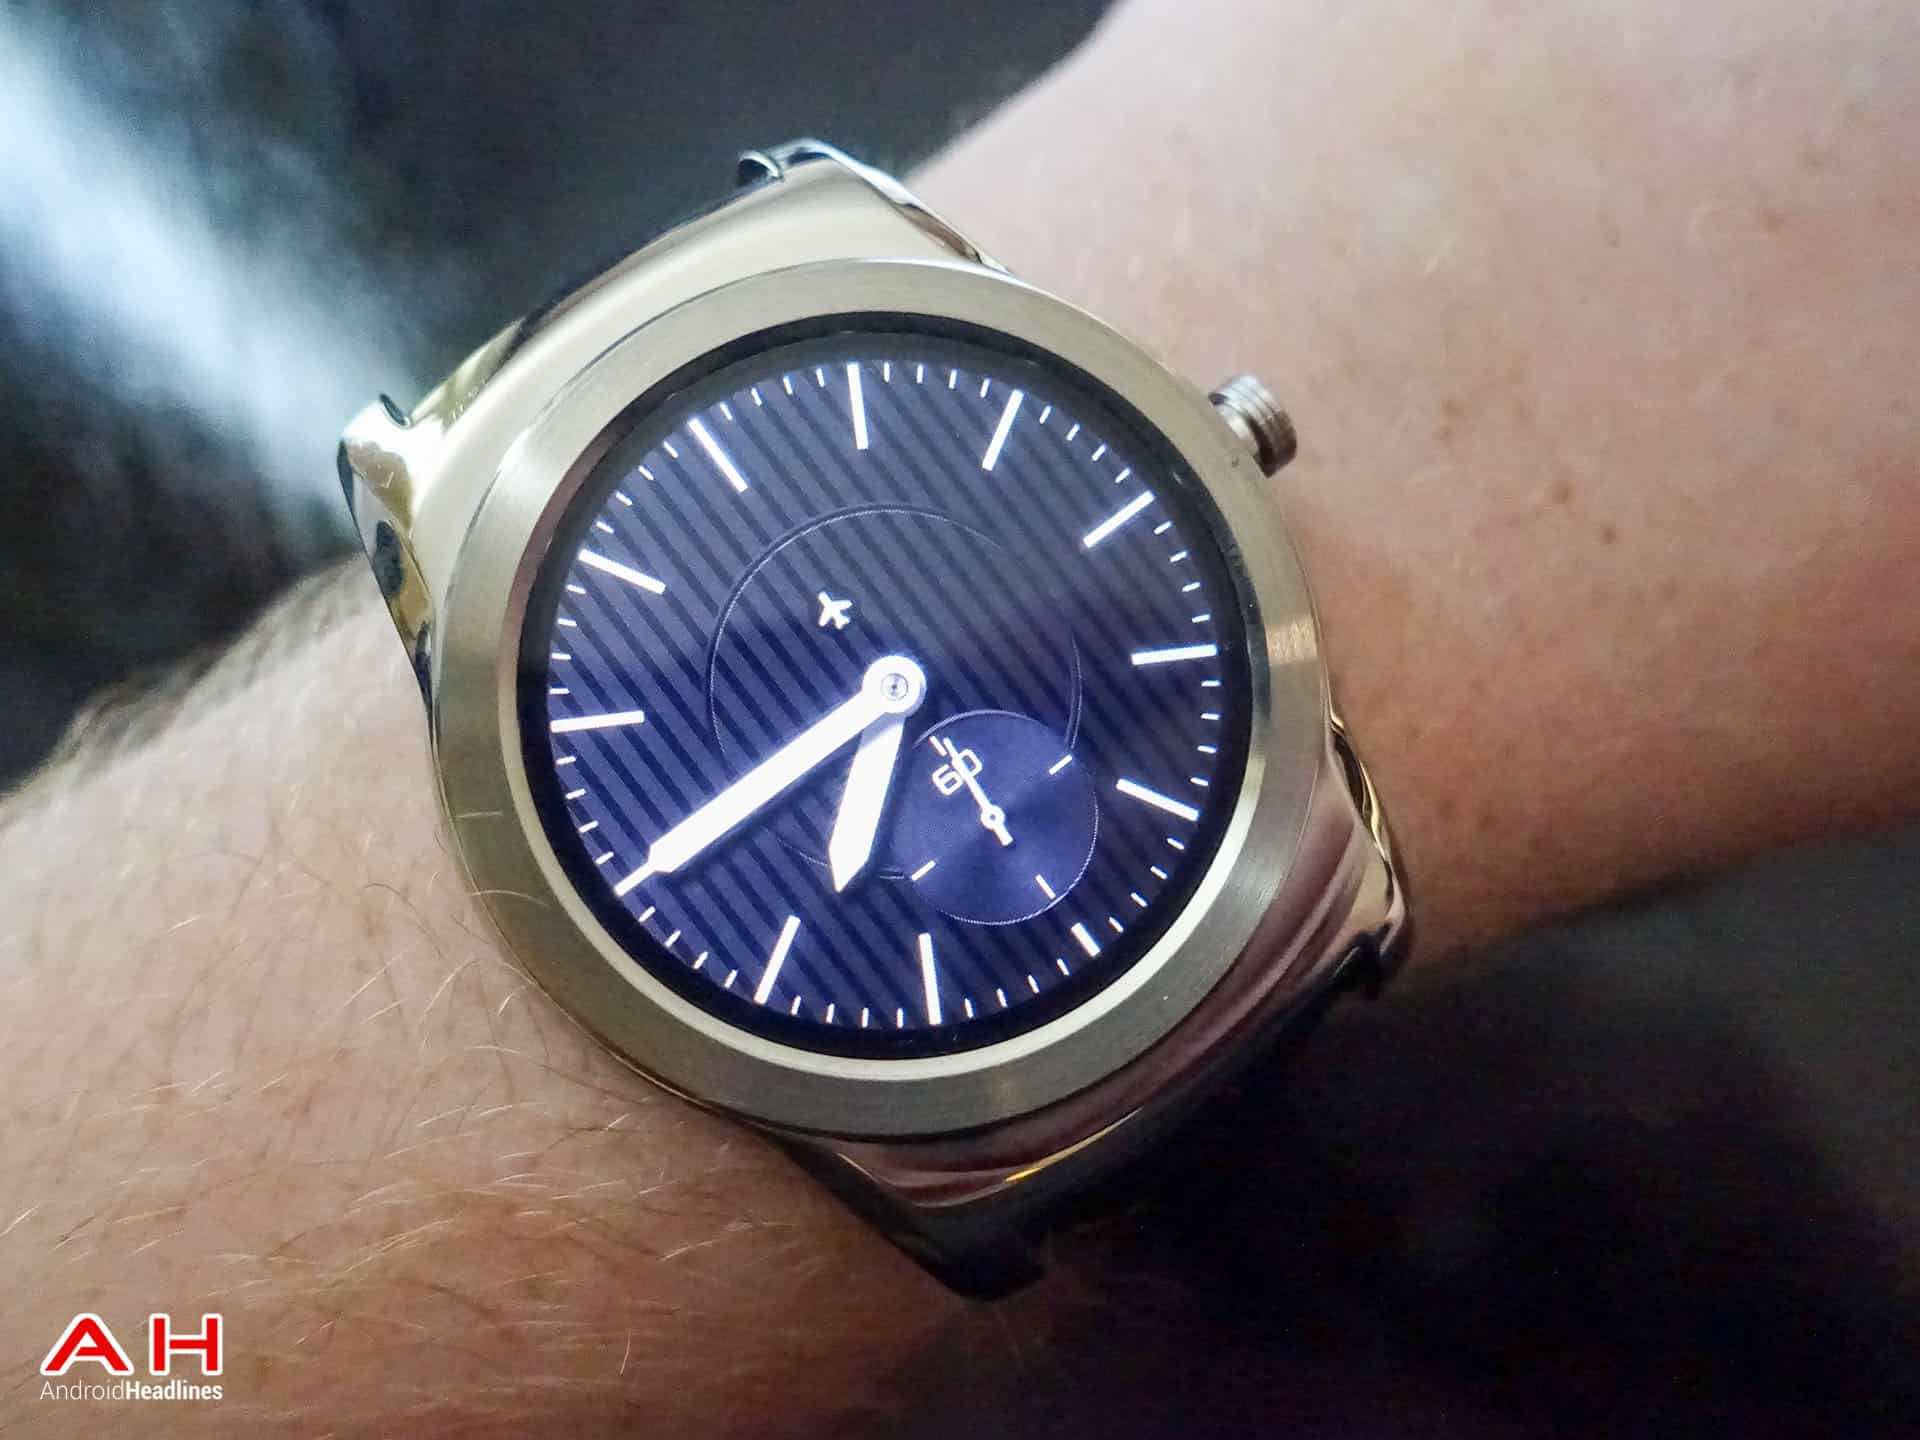 LG Watch Urbane Review AH 23